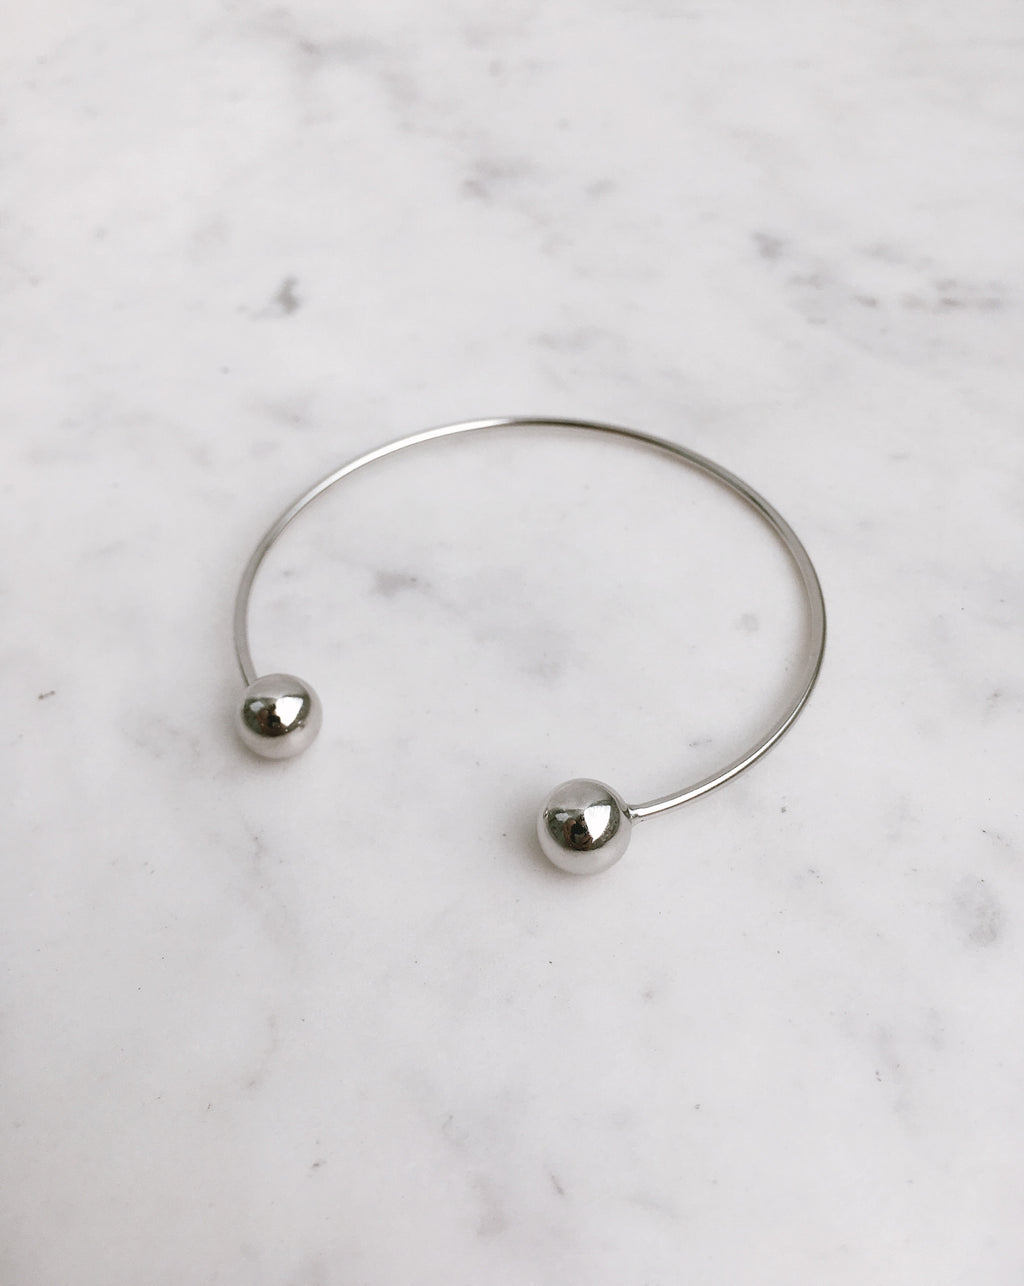 925 Sterling Silver Chic Bangle with Metal Spheres on each end - The Hexad Jewelry